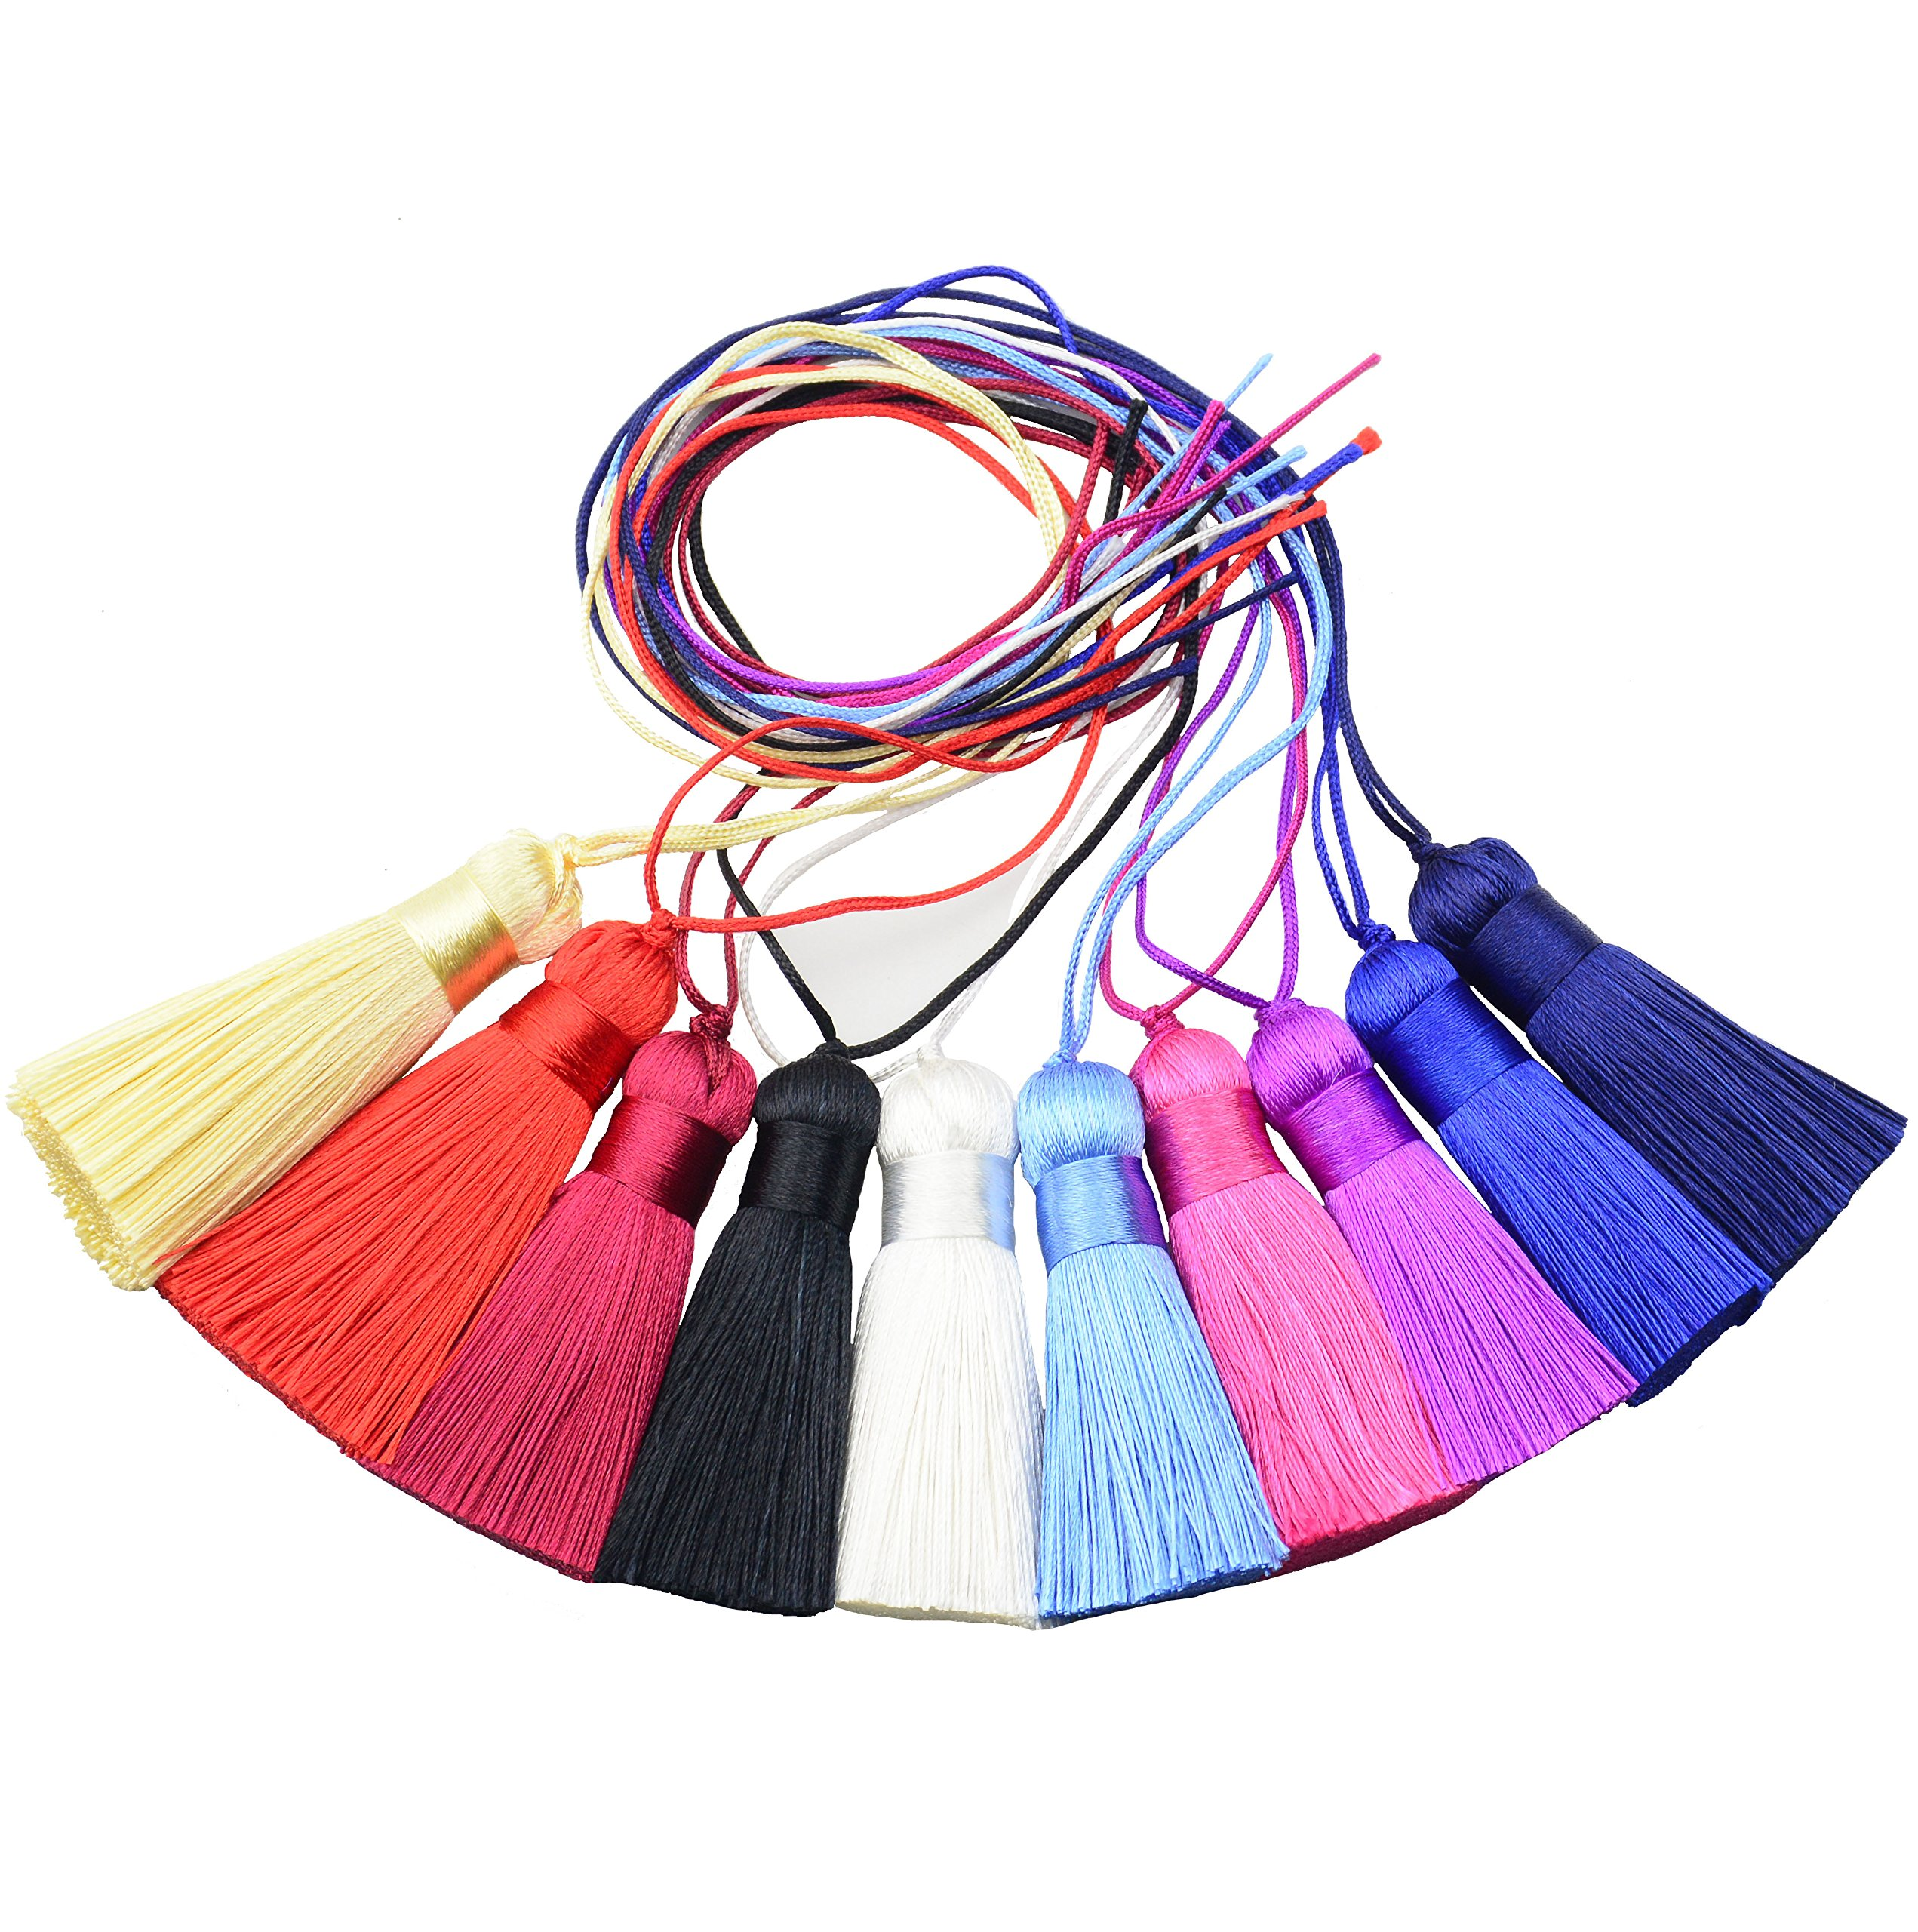 10pc 25cm/9.8 inch Cute Chunky Tassels Soft Elegant Handmade Silky Floss Tassels with 2.75 Inch Cord Loop and Chinese Knot for Woman Earrings, Jewelry Making, Souvenir, (Multi-Color) (Mixed1)